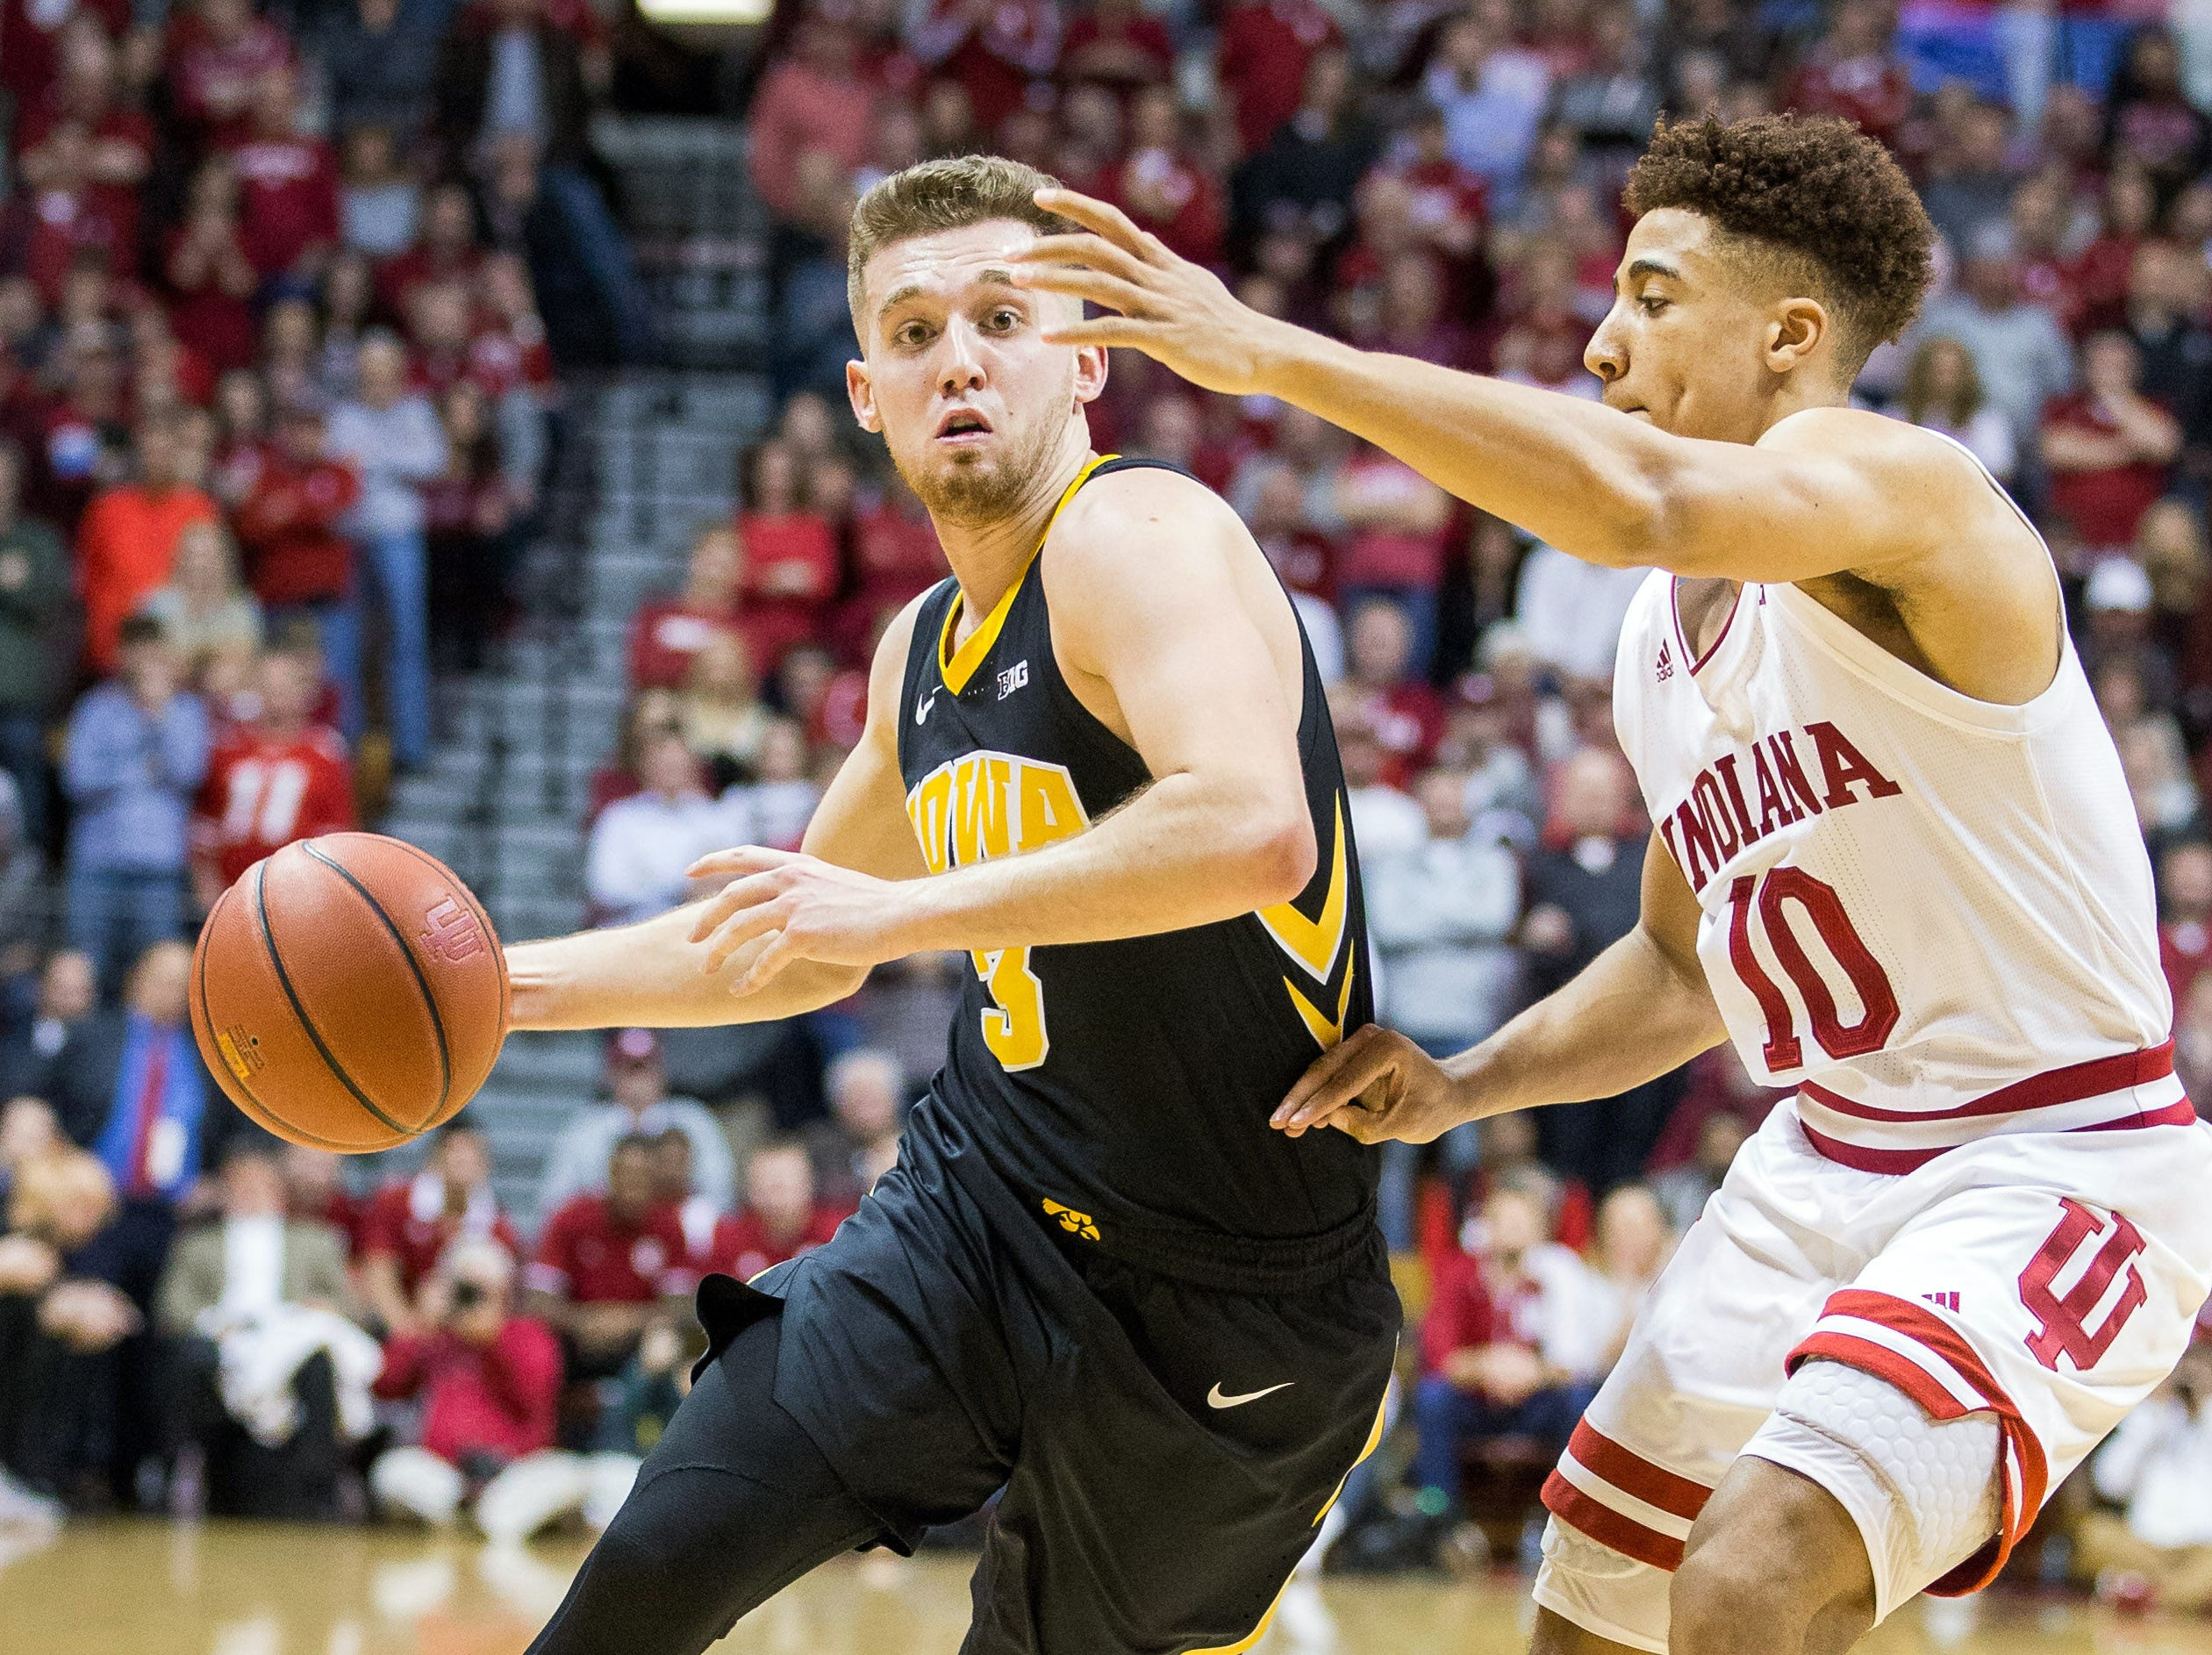 Iowa Hawkeyes guard Jordan Bohannon (3) dribbles the ball while Indiana Hoosiers guard Rob Phinisee (10) defends in the second half at Assembly Hall. Mandatory Credit: Trevor Ruszkowski-USA TODAY Sports